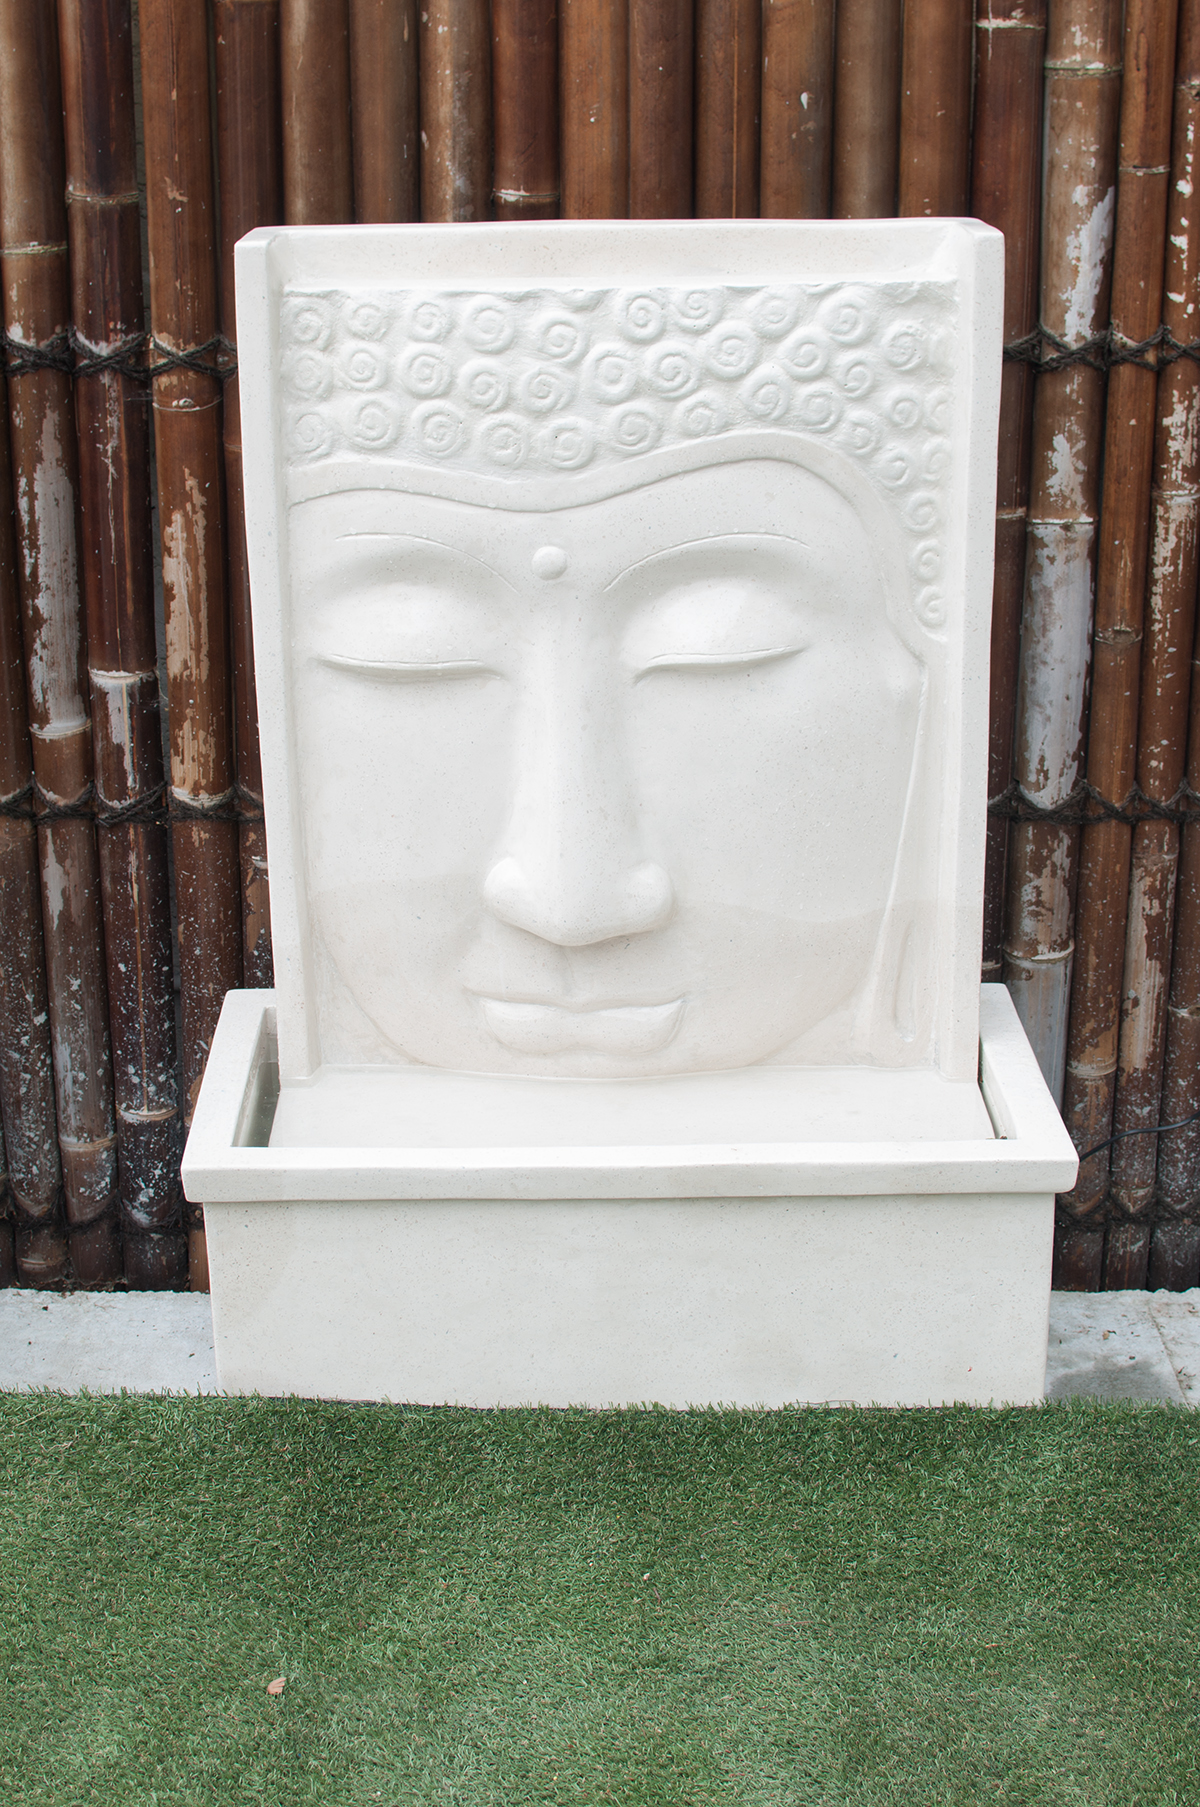 fontaine mur d 39 eau forme bouddha 111cm containers du monde. Black Bedroom Furniture Sets. Home Design Ideas